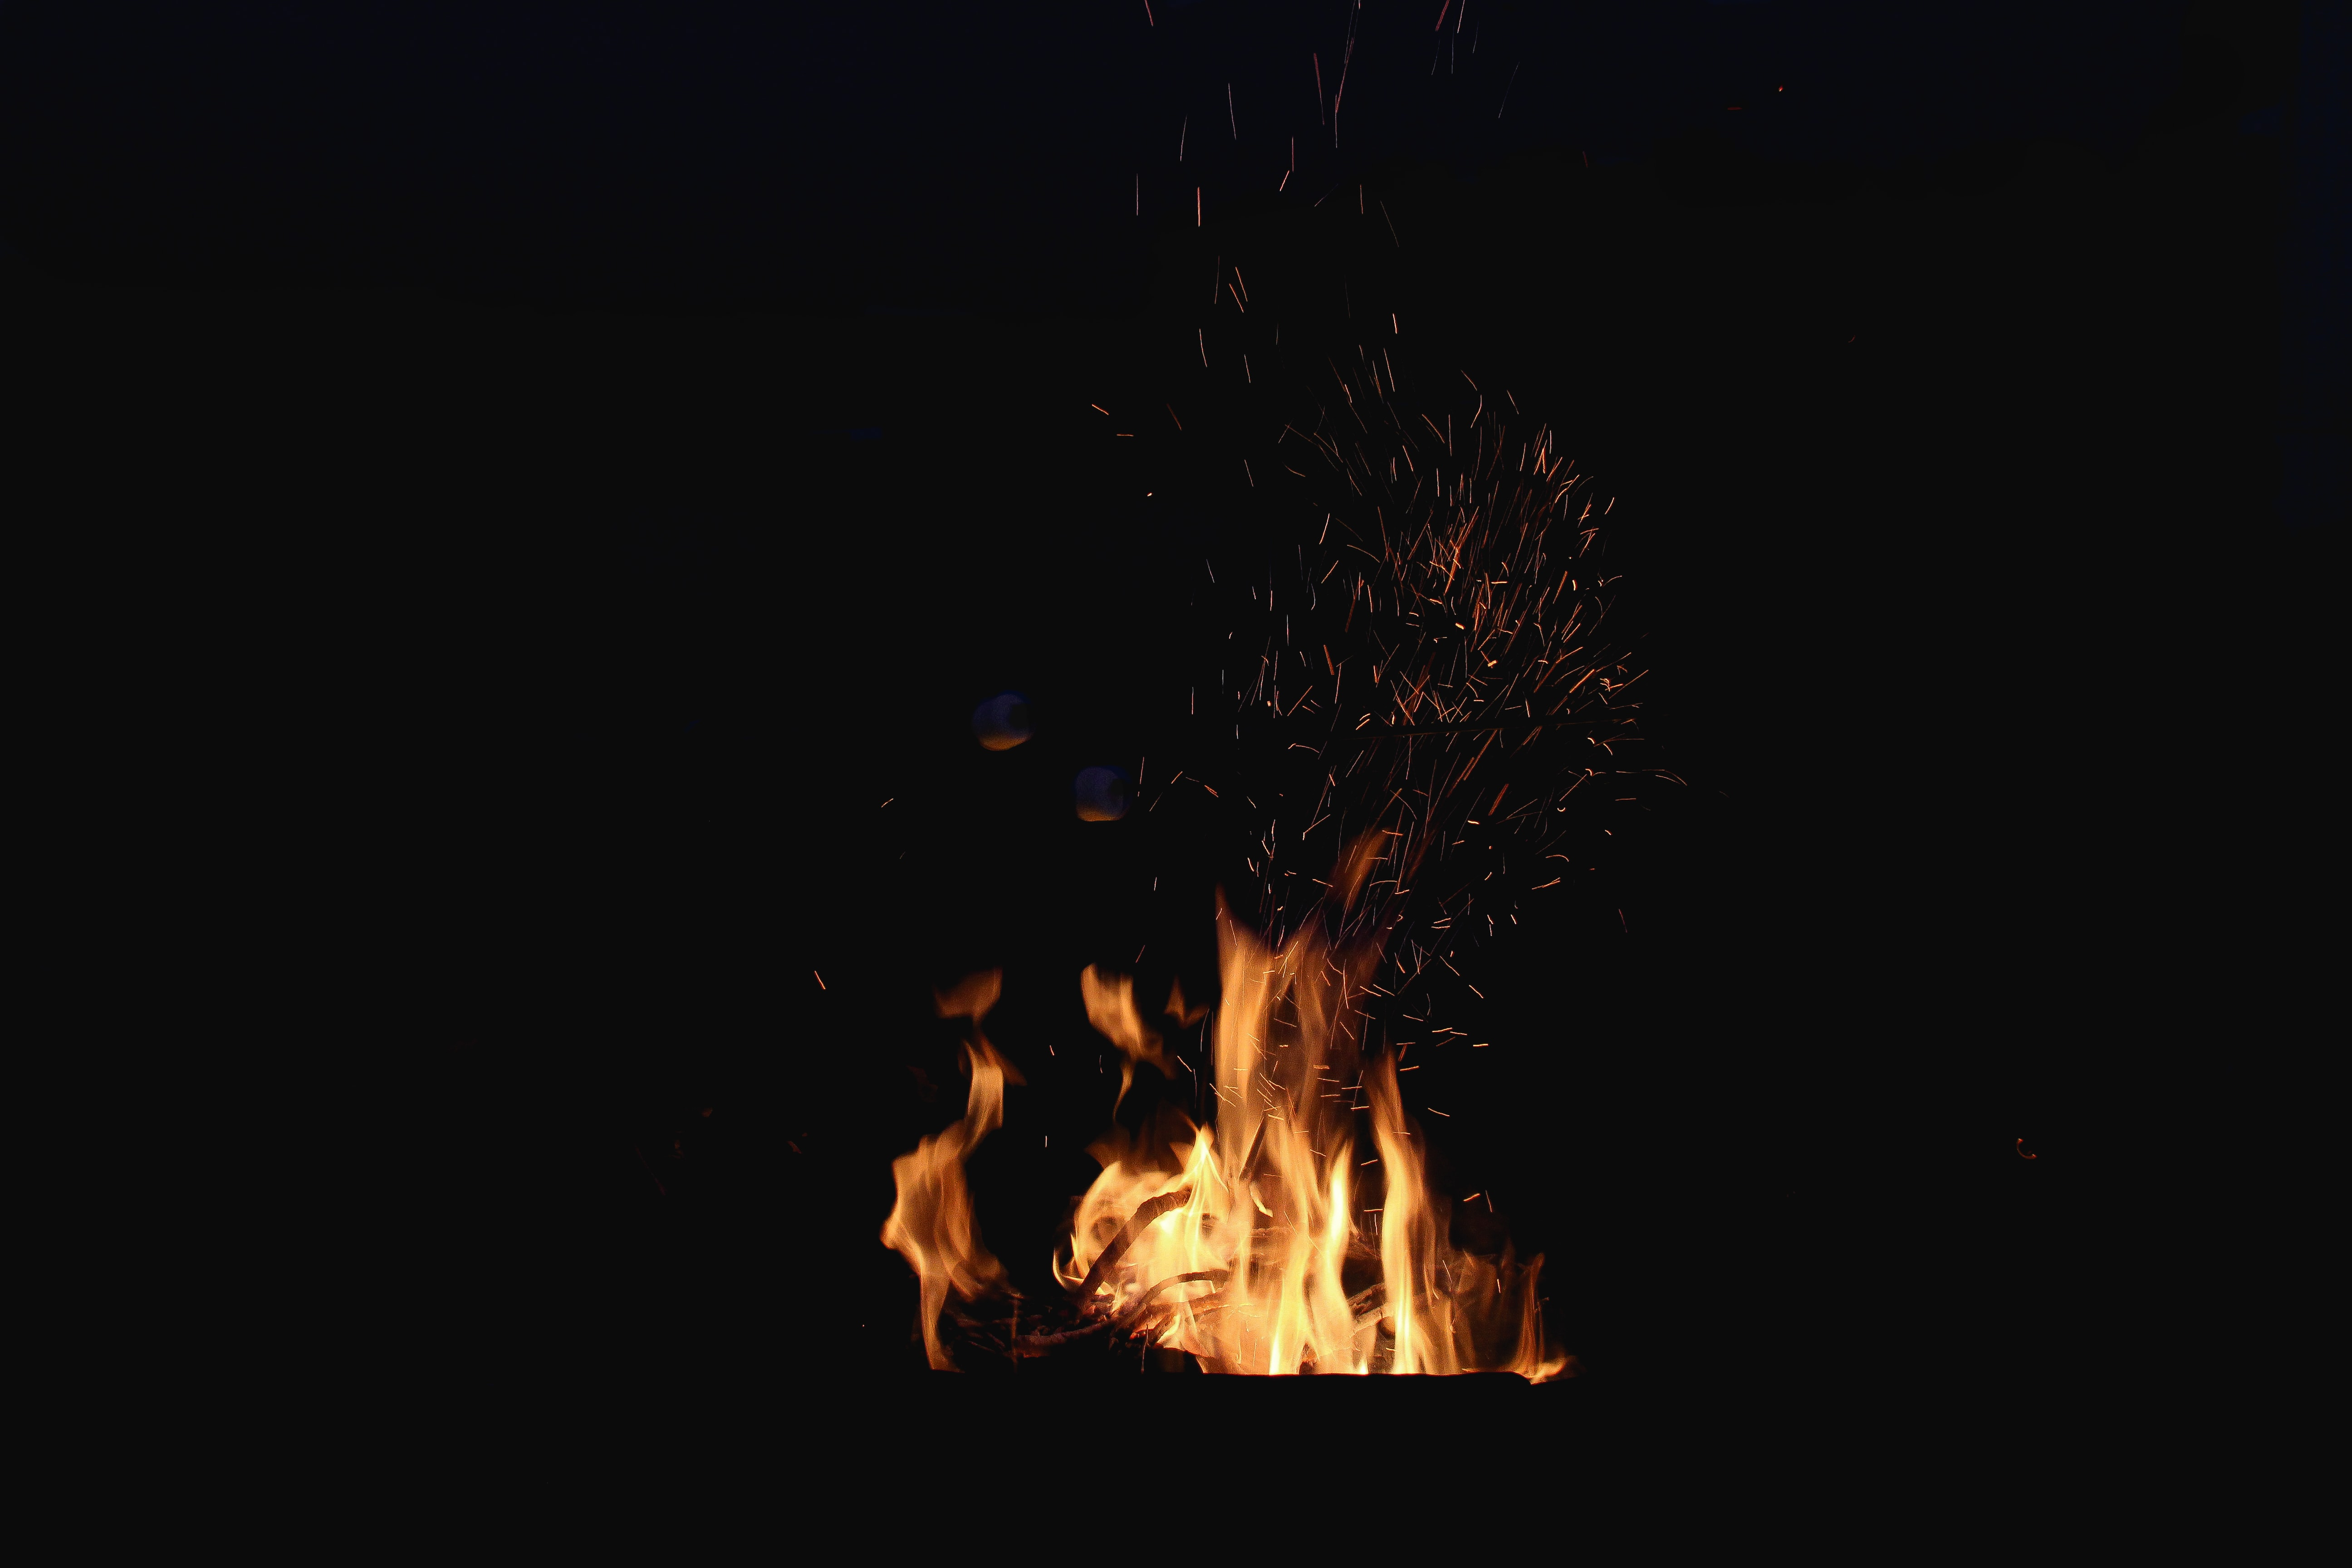 A bright orange fire with ash flying off at night at a campsite